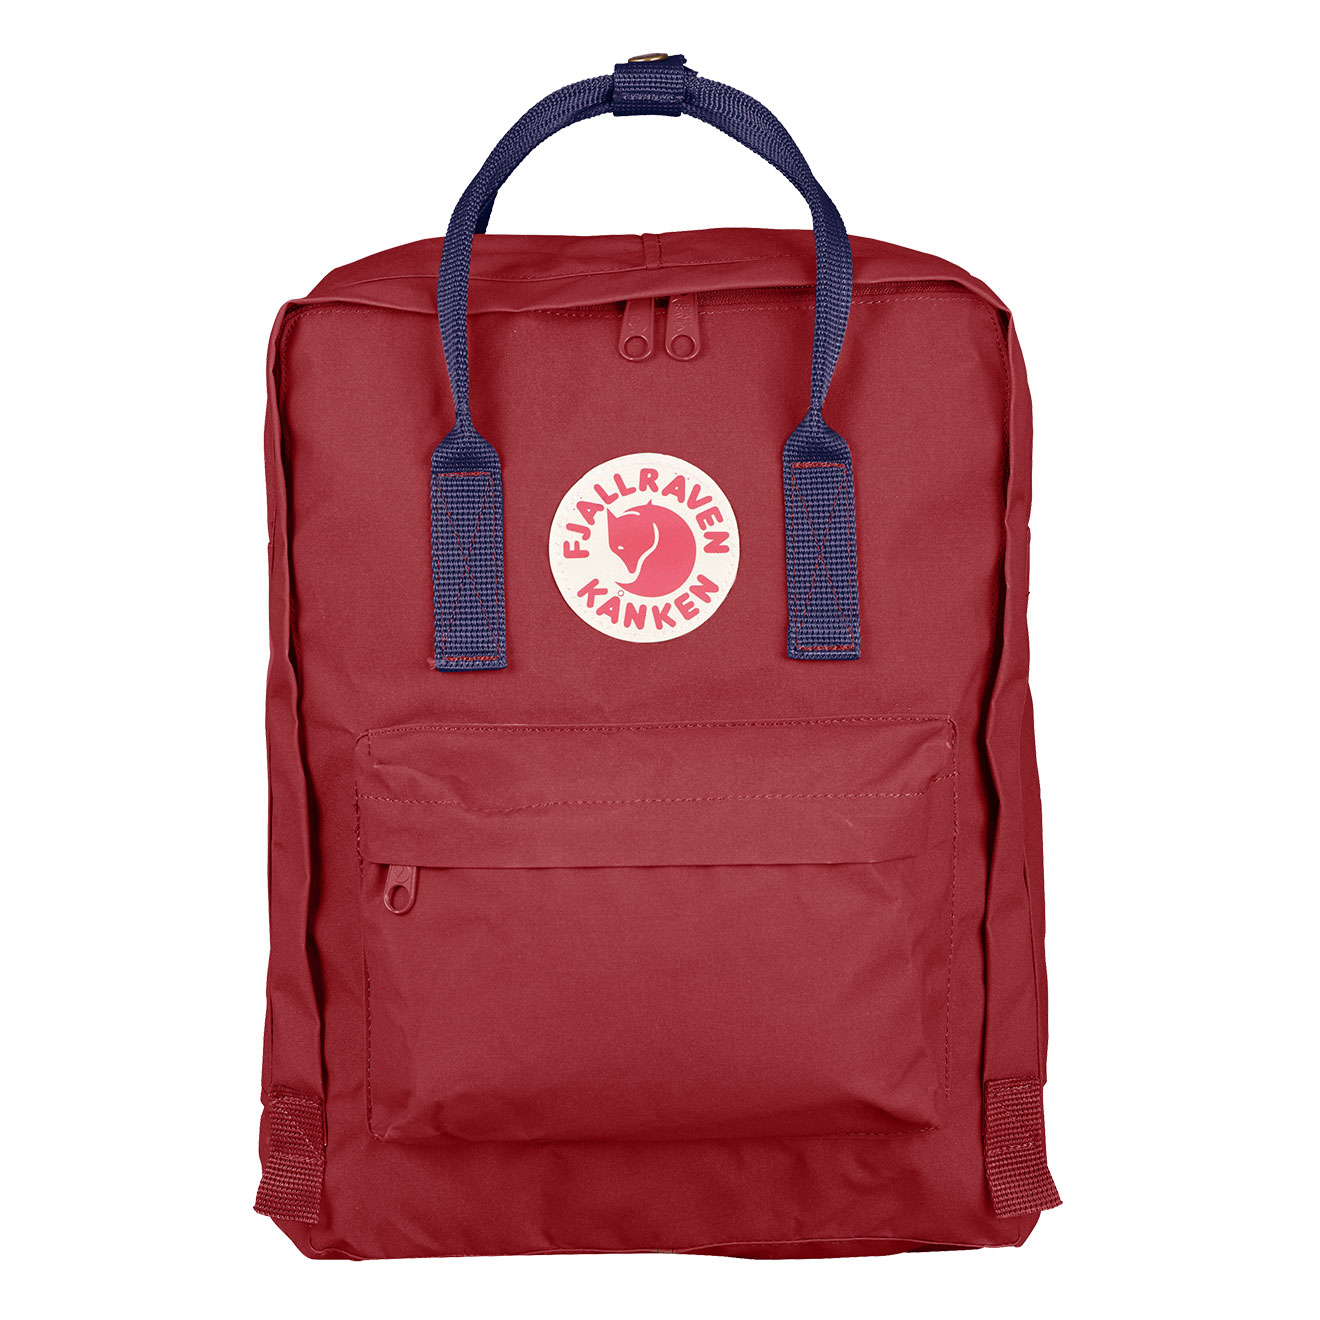 kanken ox red royal blue